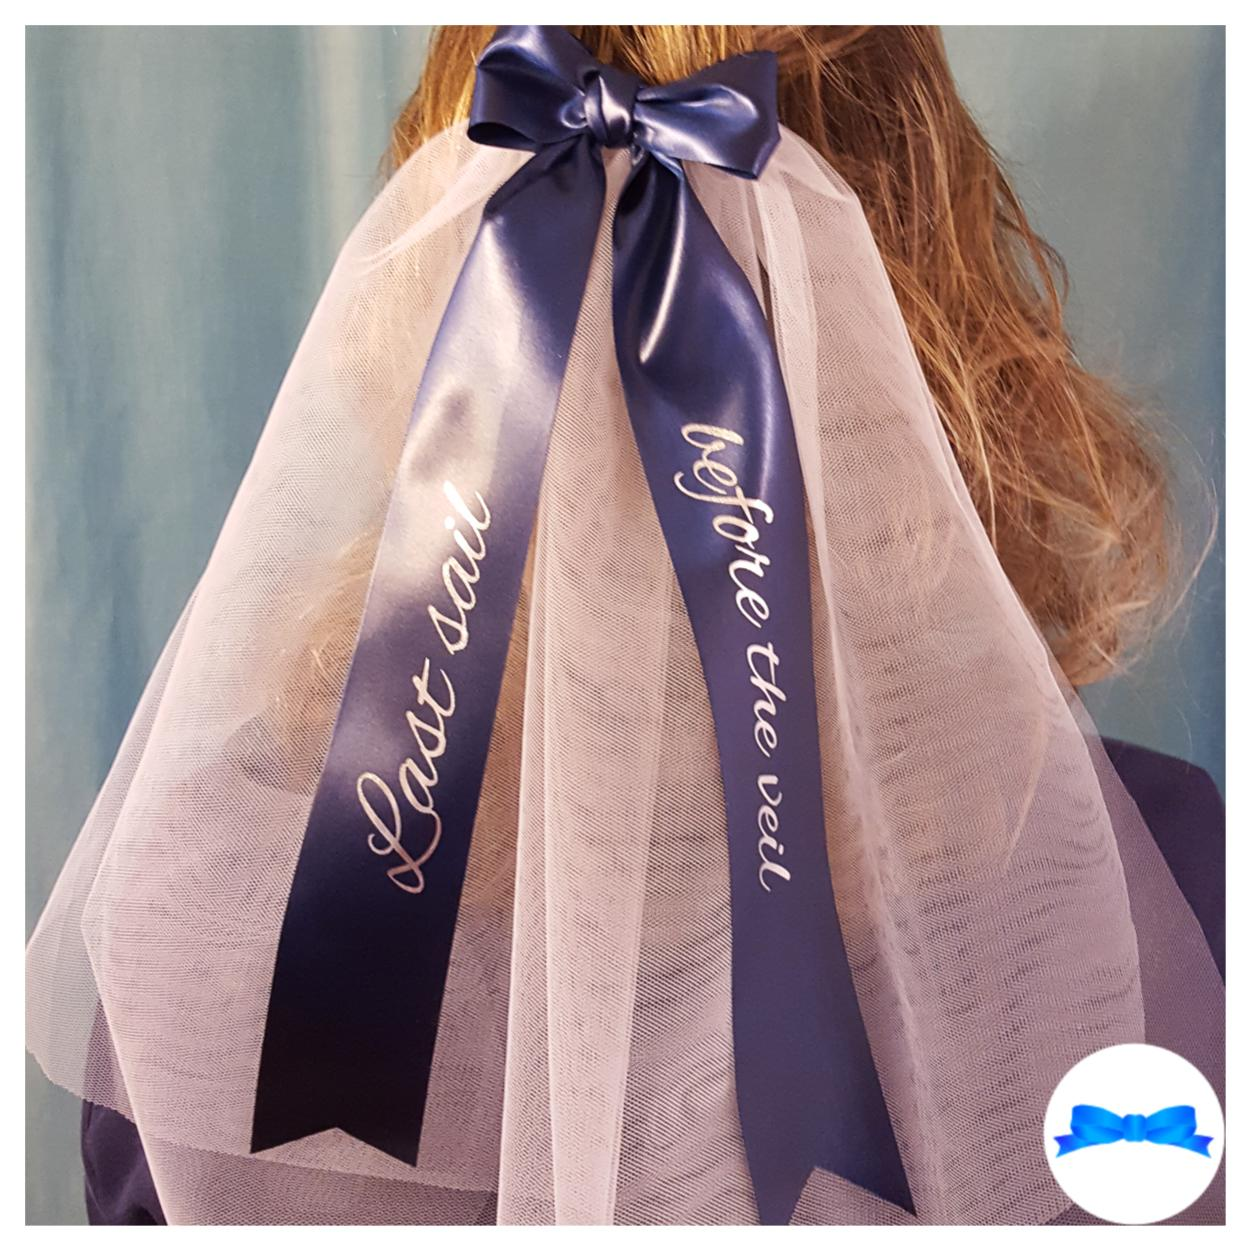 Last sail before the veil hen party veil navy blue ribbon and silver print